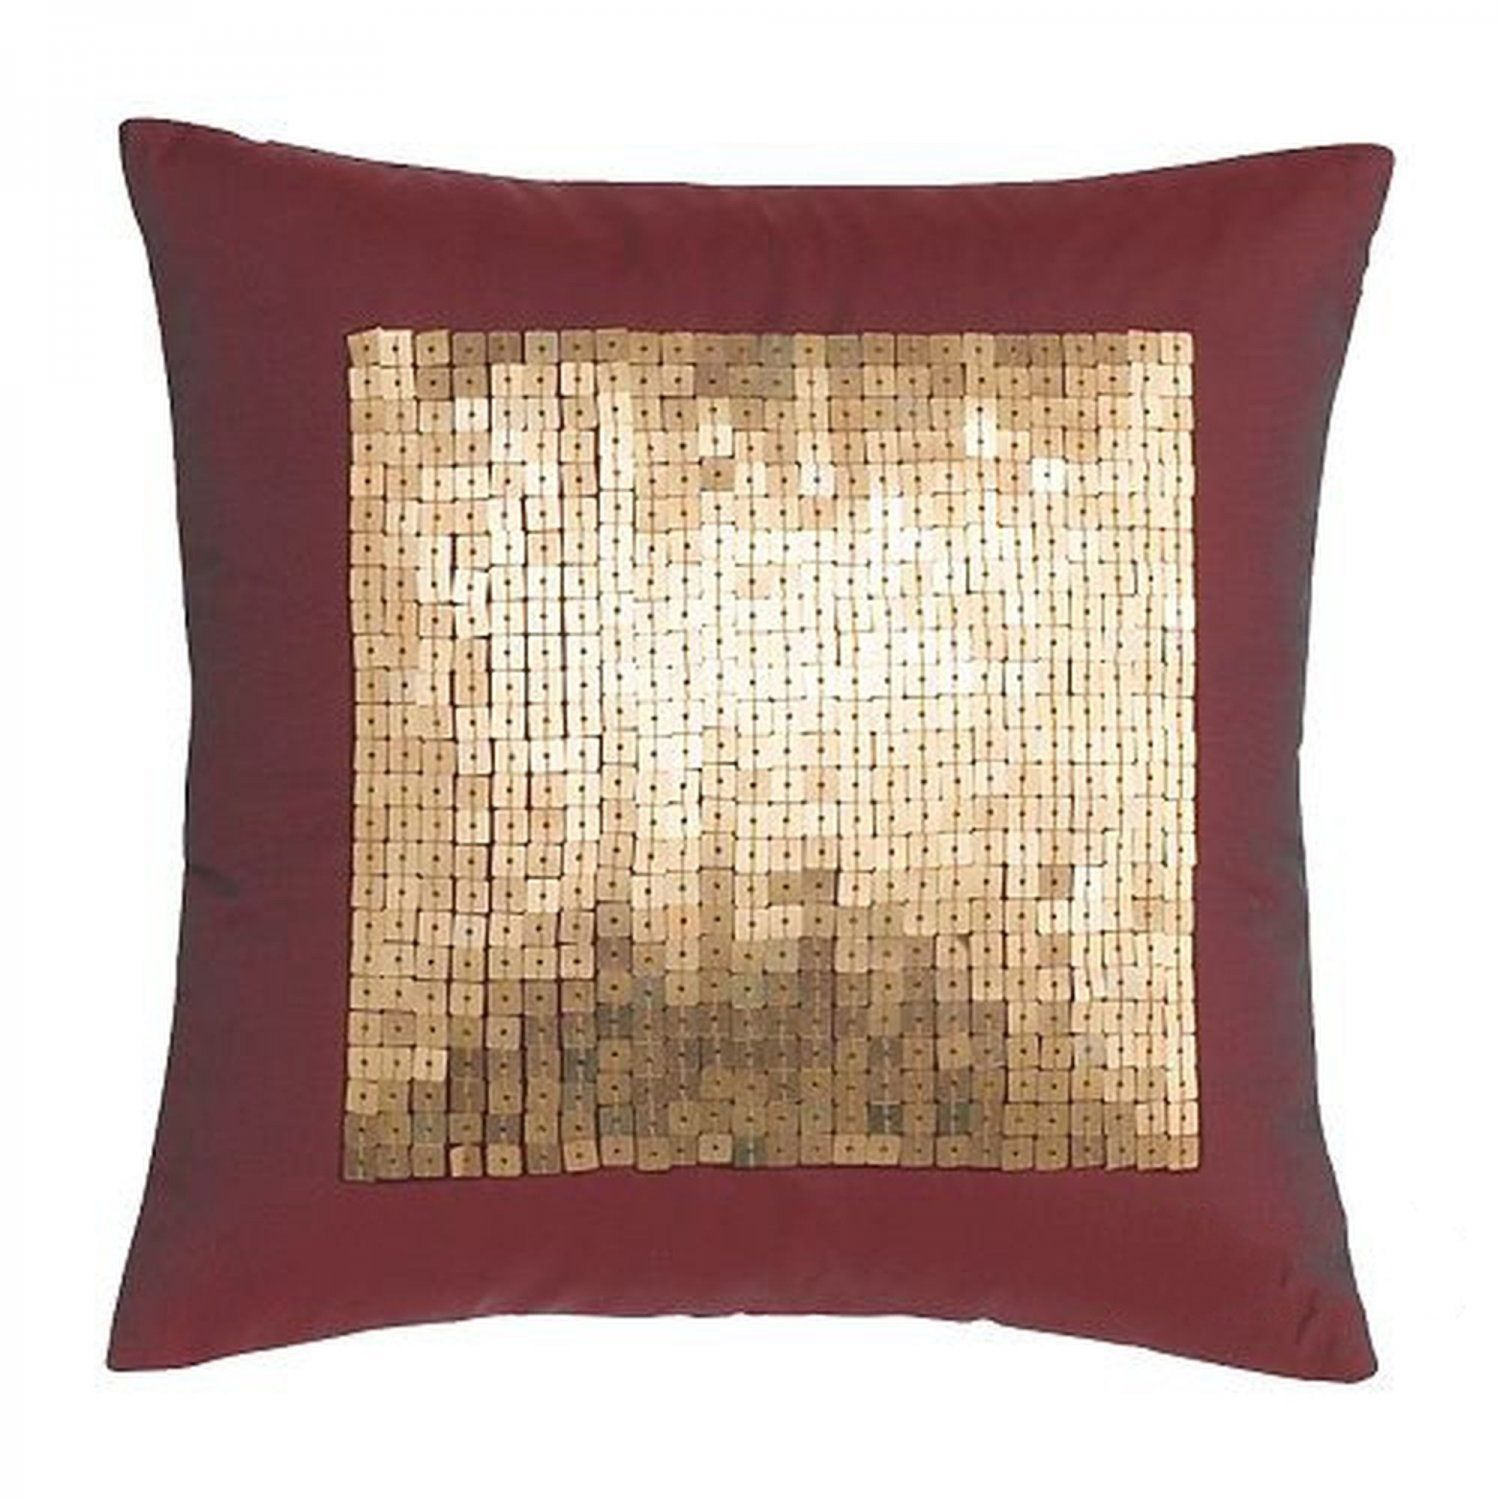 IKEA Fenja Paljett Throw PILLOW Cushion GOLD SEQUINS Burgundy Red  ...